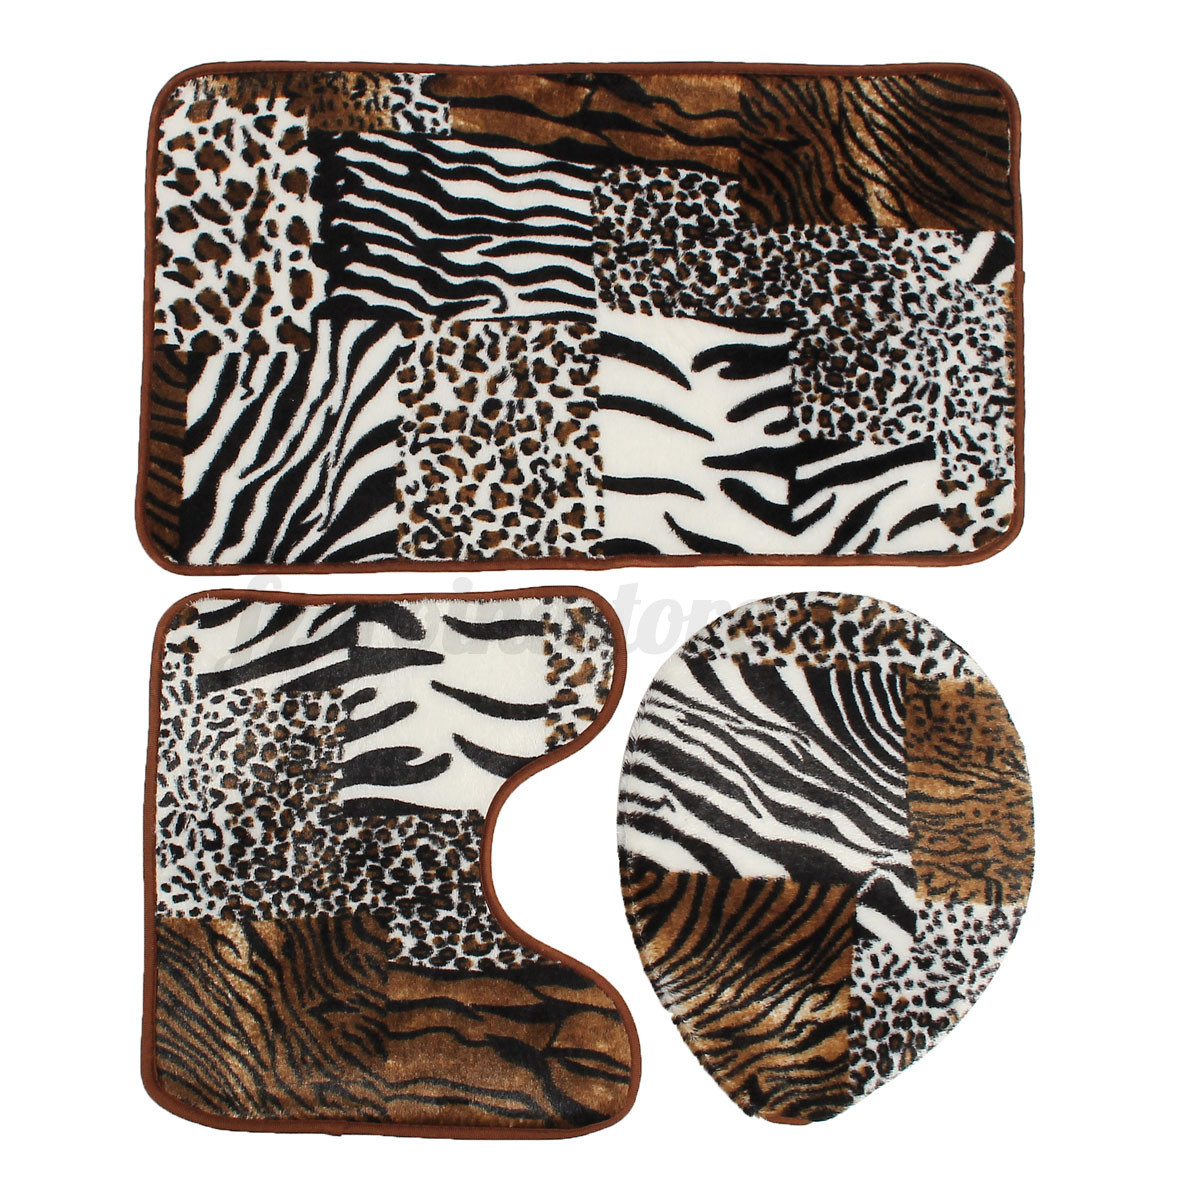 3 Pc Zebra Leopard Print Toilet Cover Set Bathroom Mat Rug